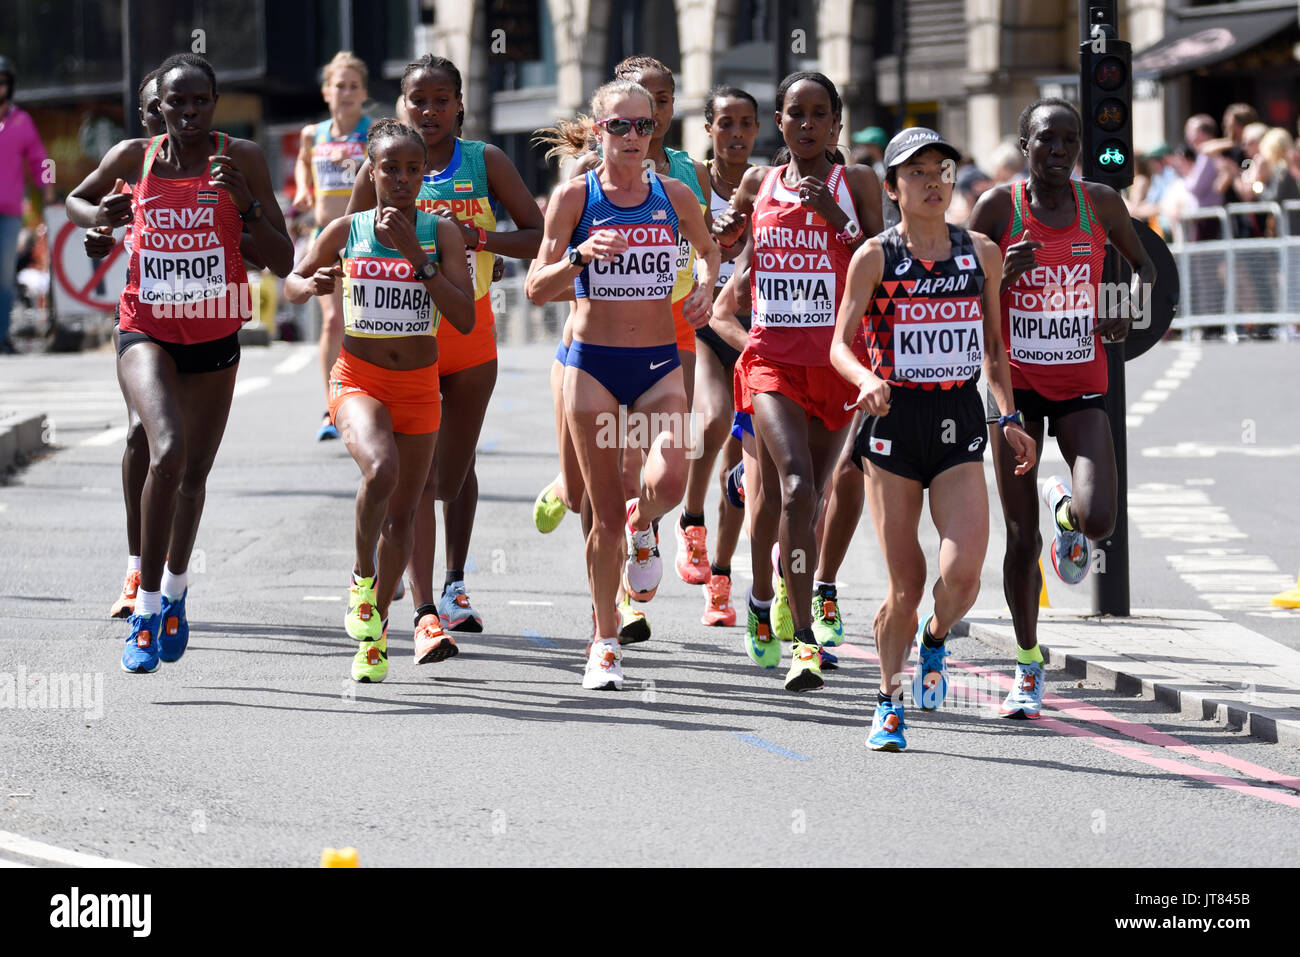 Women running in the IAAF World Championships 2017 Marathon race in London, UK. Space for copy - Stock Image